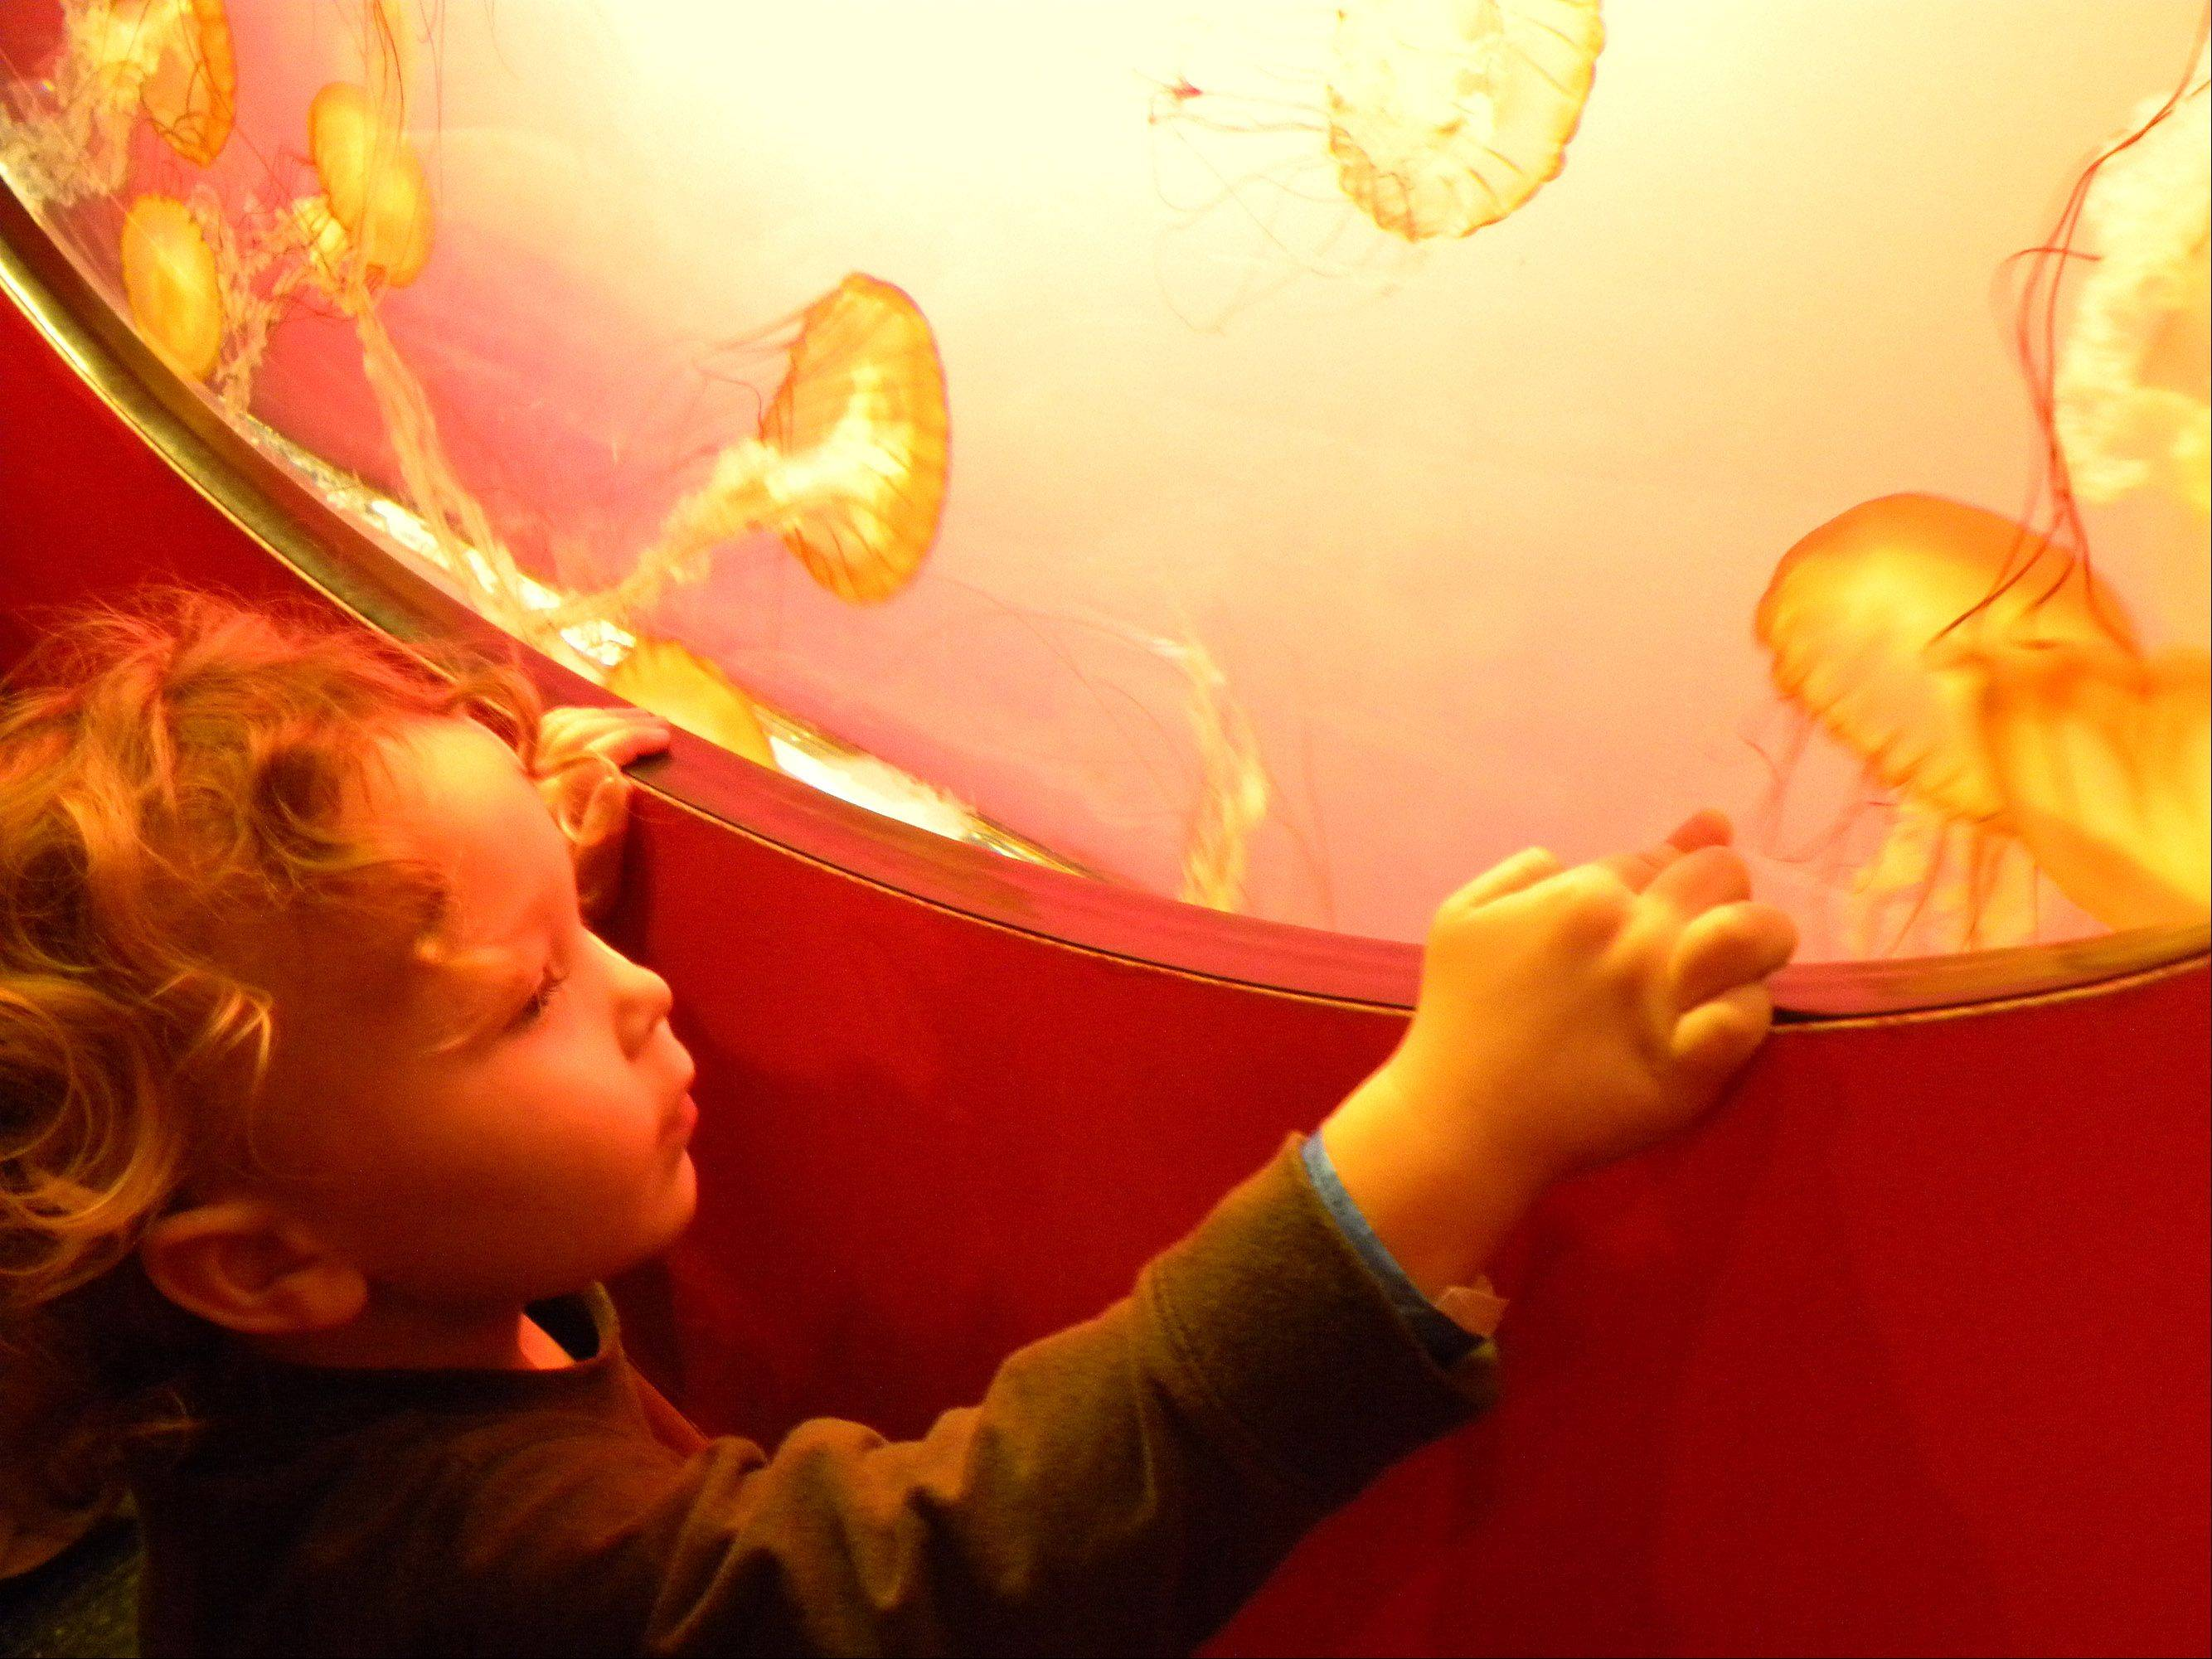 Julie Kolakowski-Jeong of Roselle took this picture of her nephew, Nathan, enjoying the jellyfish at the Shedd Aquarium in Chicago.